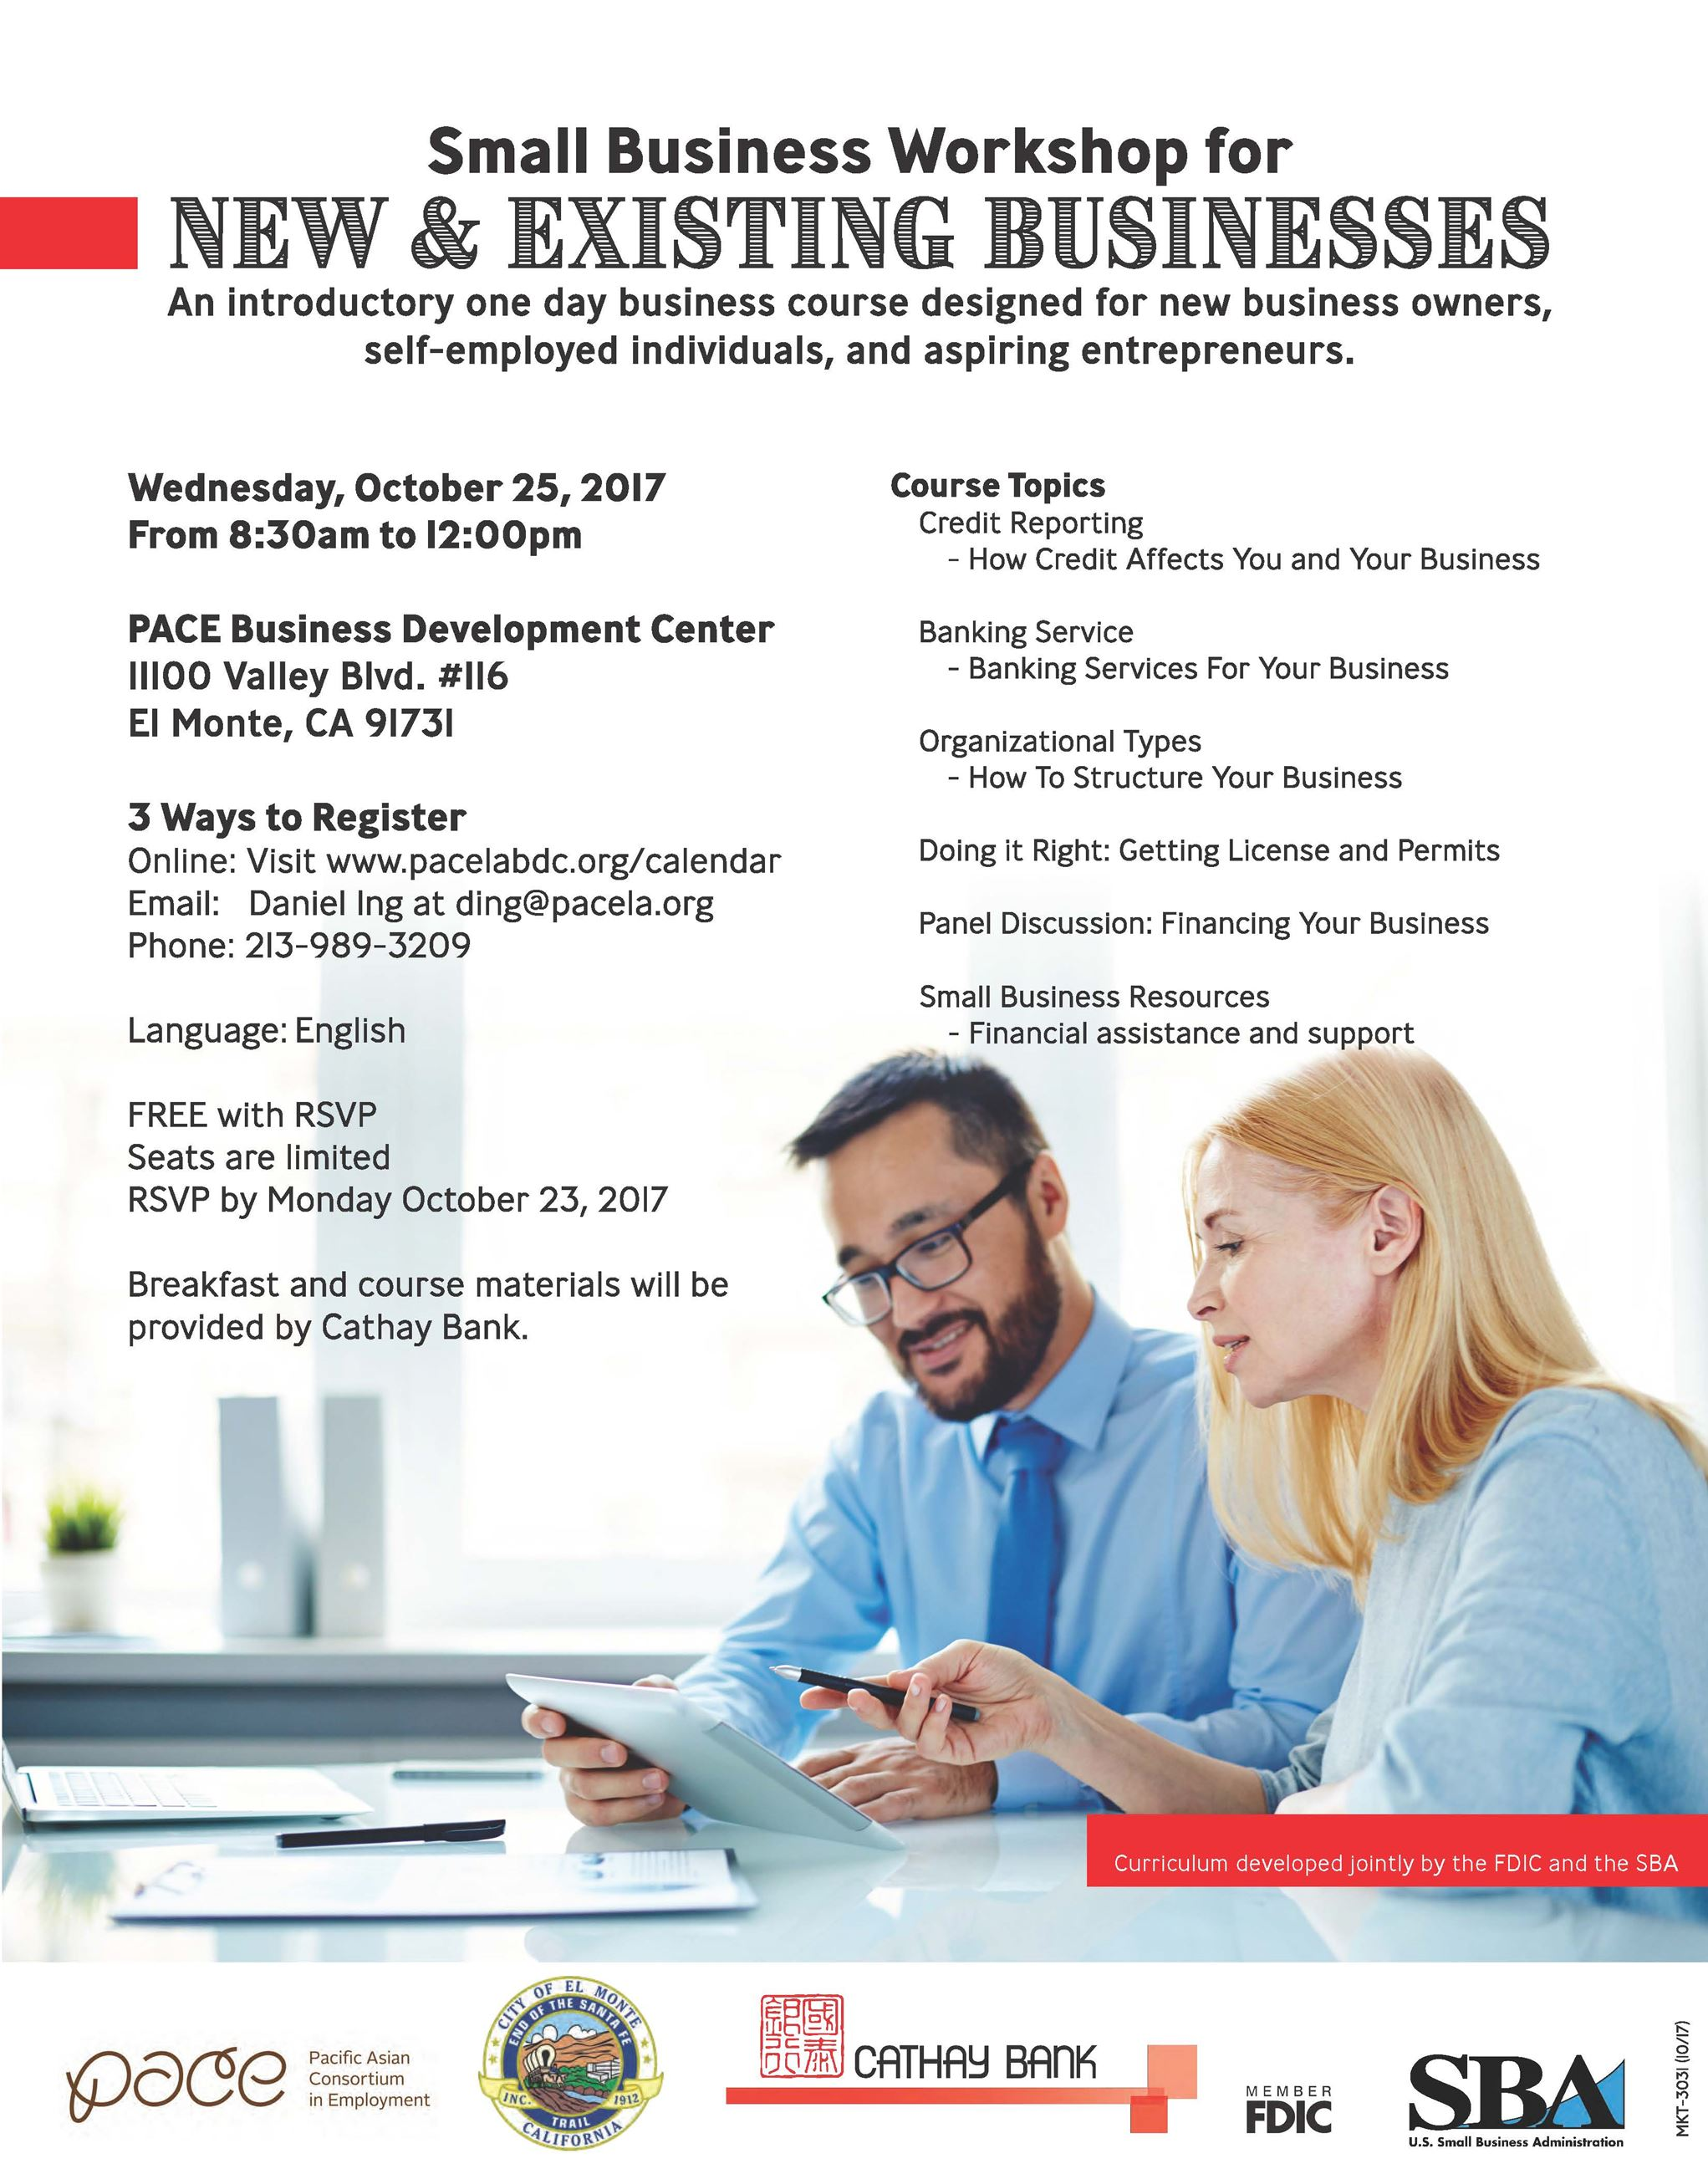 Information for a small business workshop